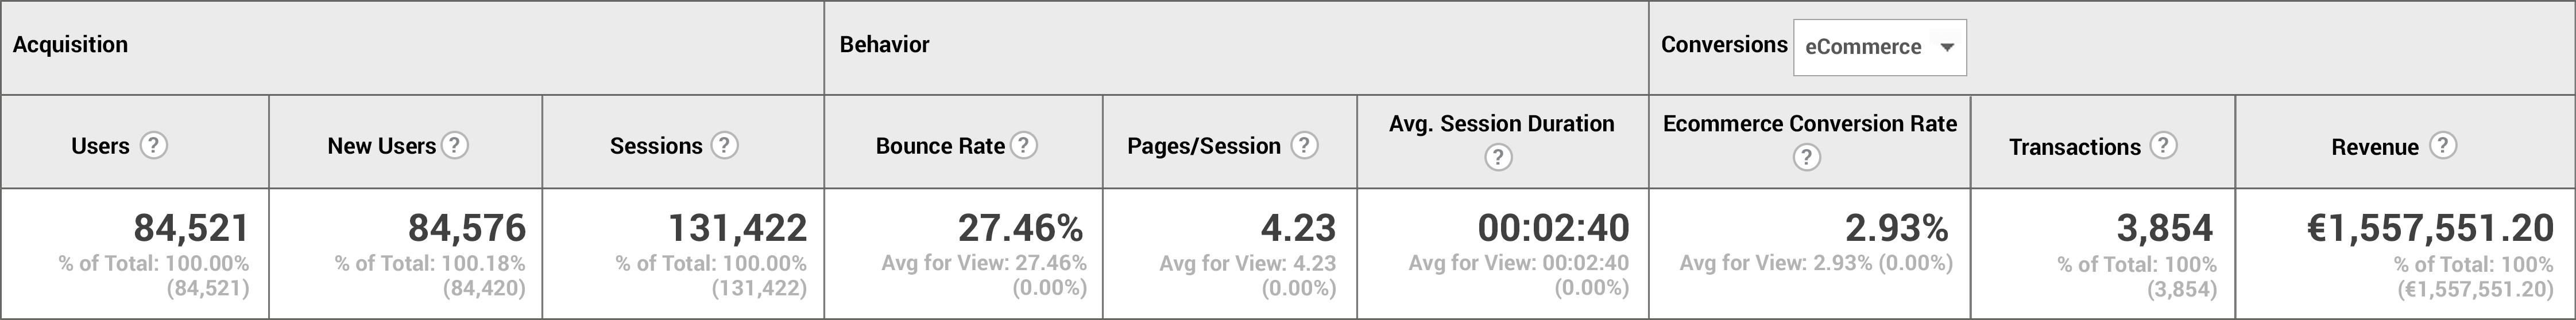 Figure 1: Sample Google Analytics data for a three-star Dublin city centre hotel.